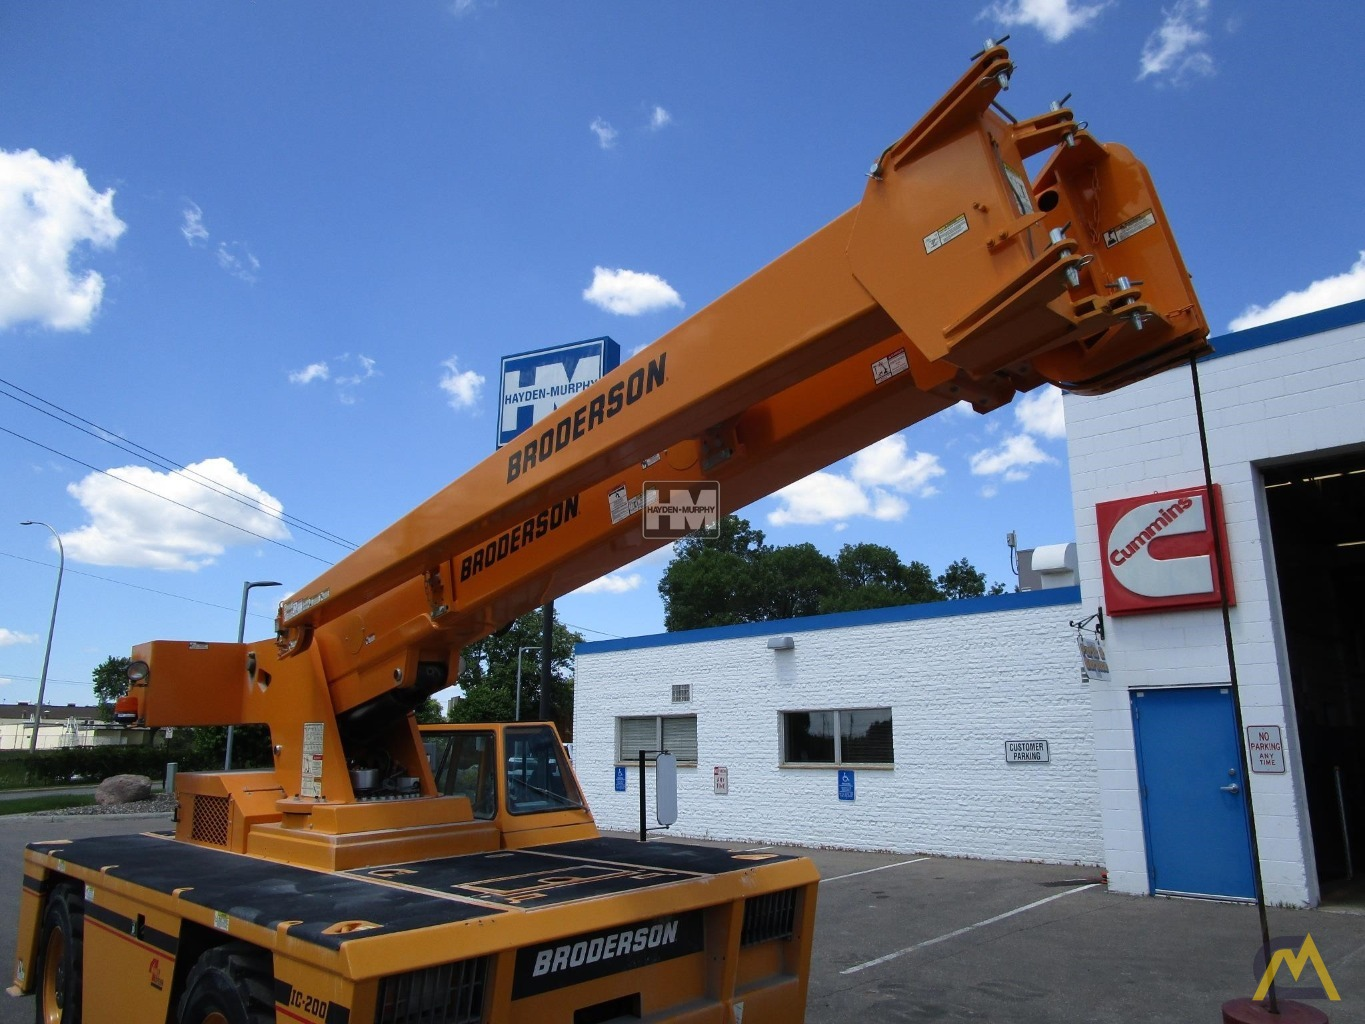 Broderson IC-200-2H 15-Ton Industrial Carry Deck Crane 13